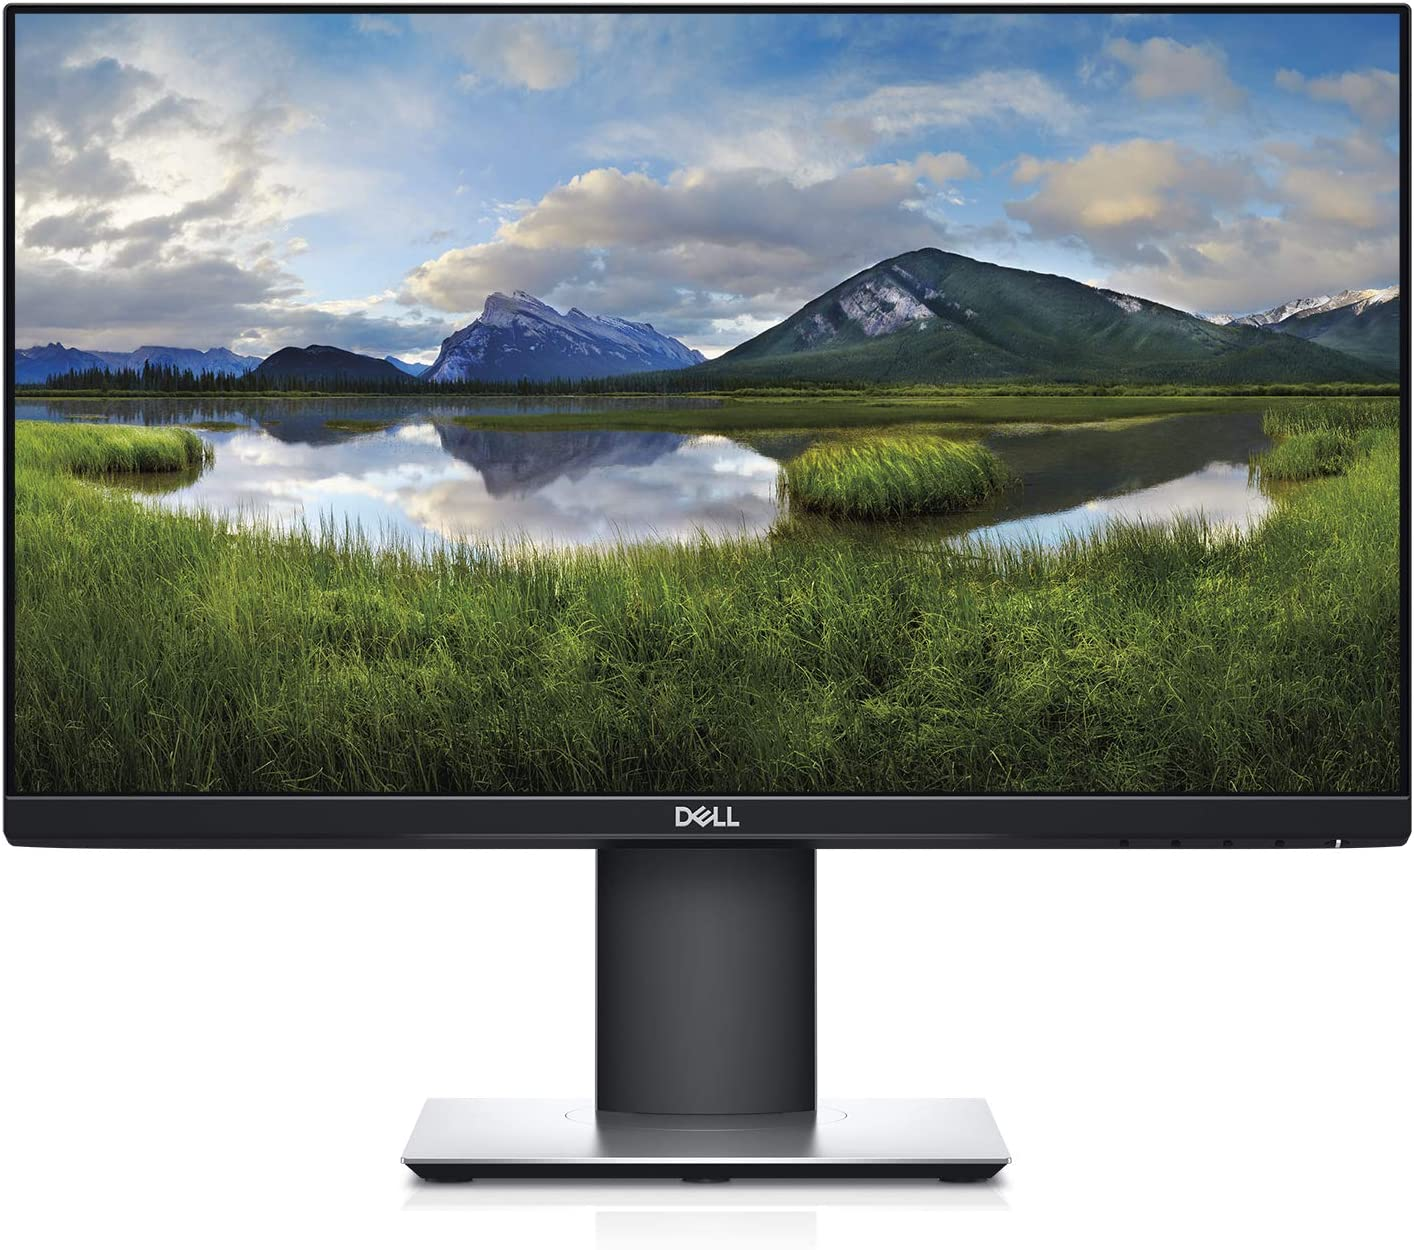 Dell P2719H vertical monitor for office